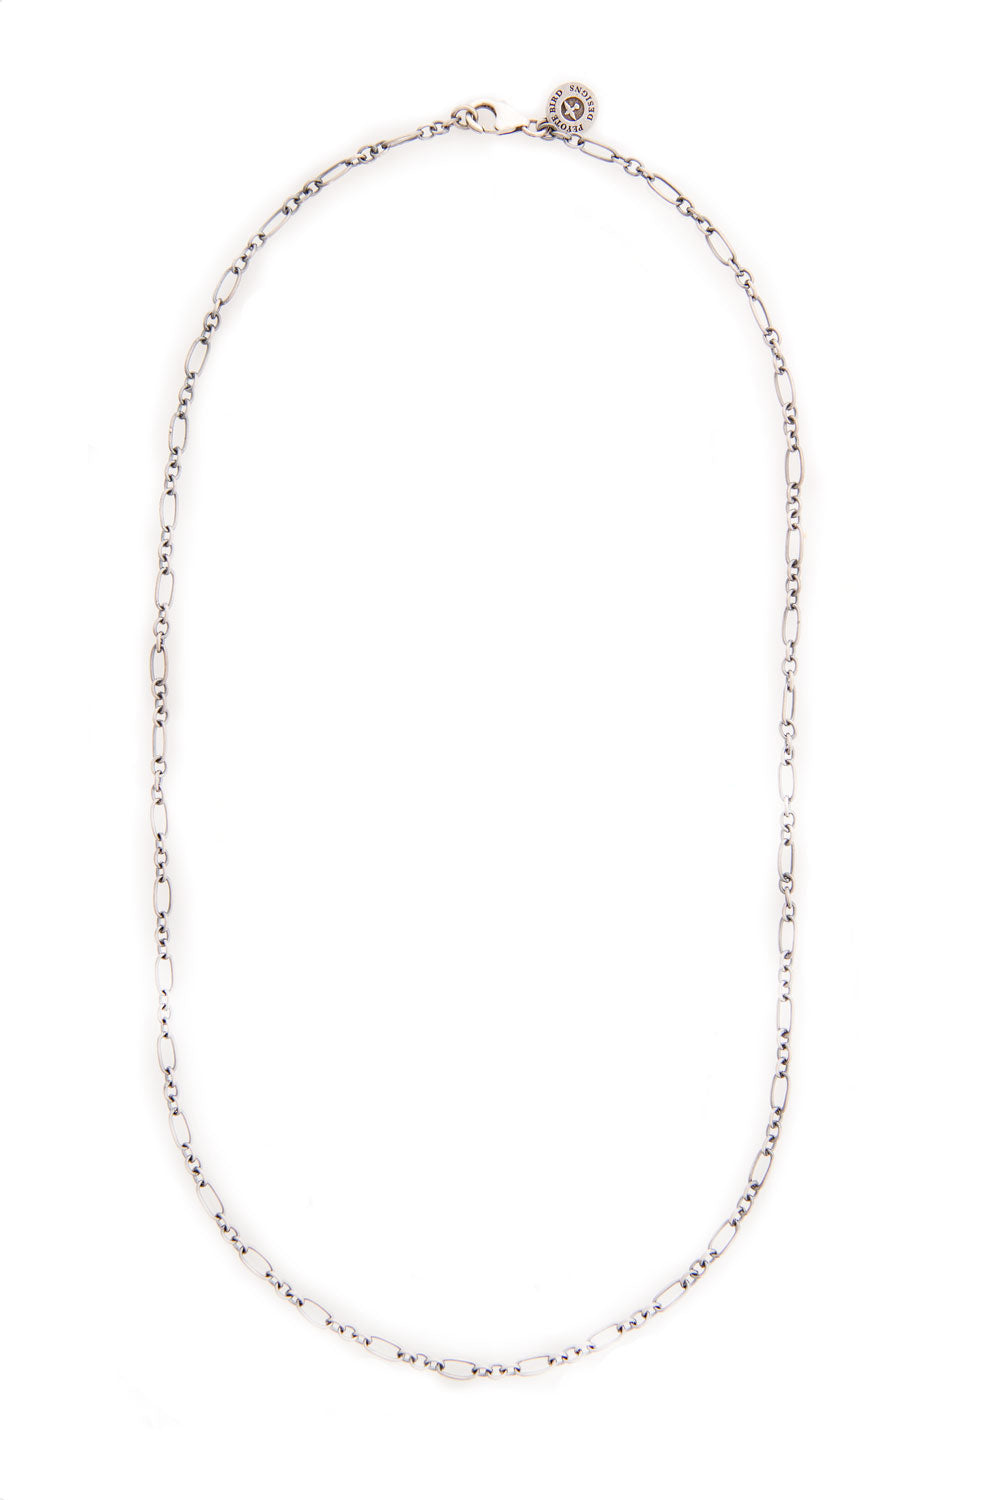 Necklace, Chain 24""